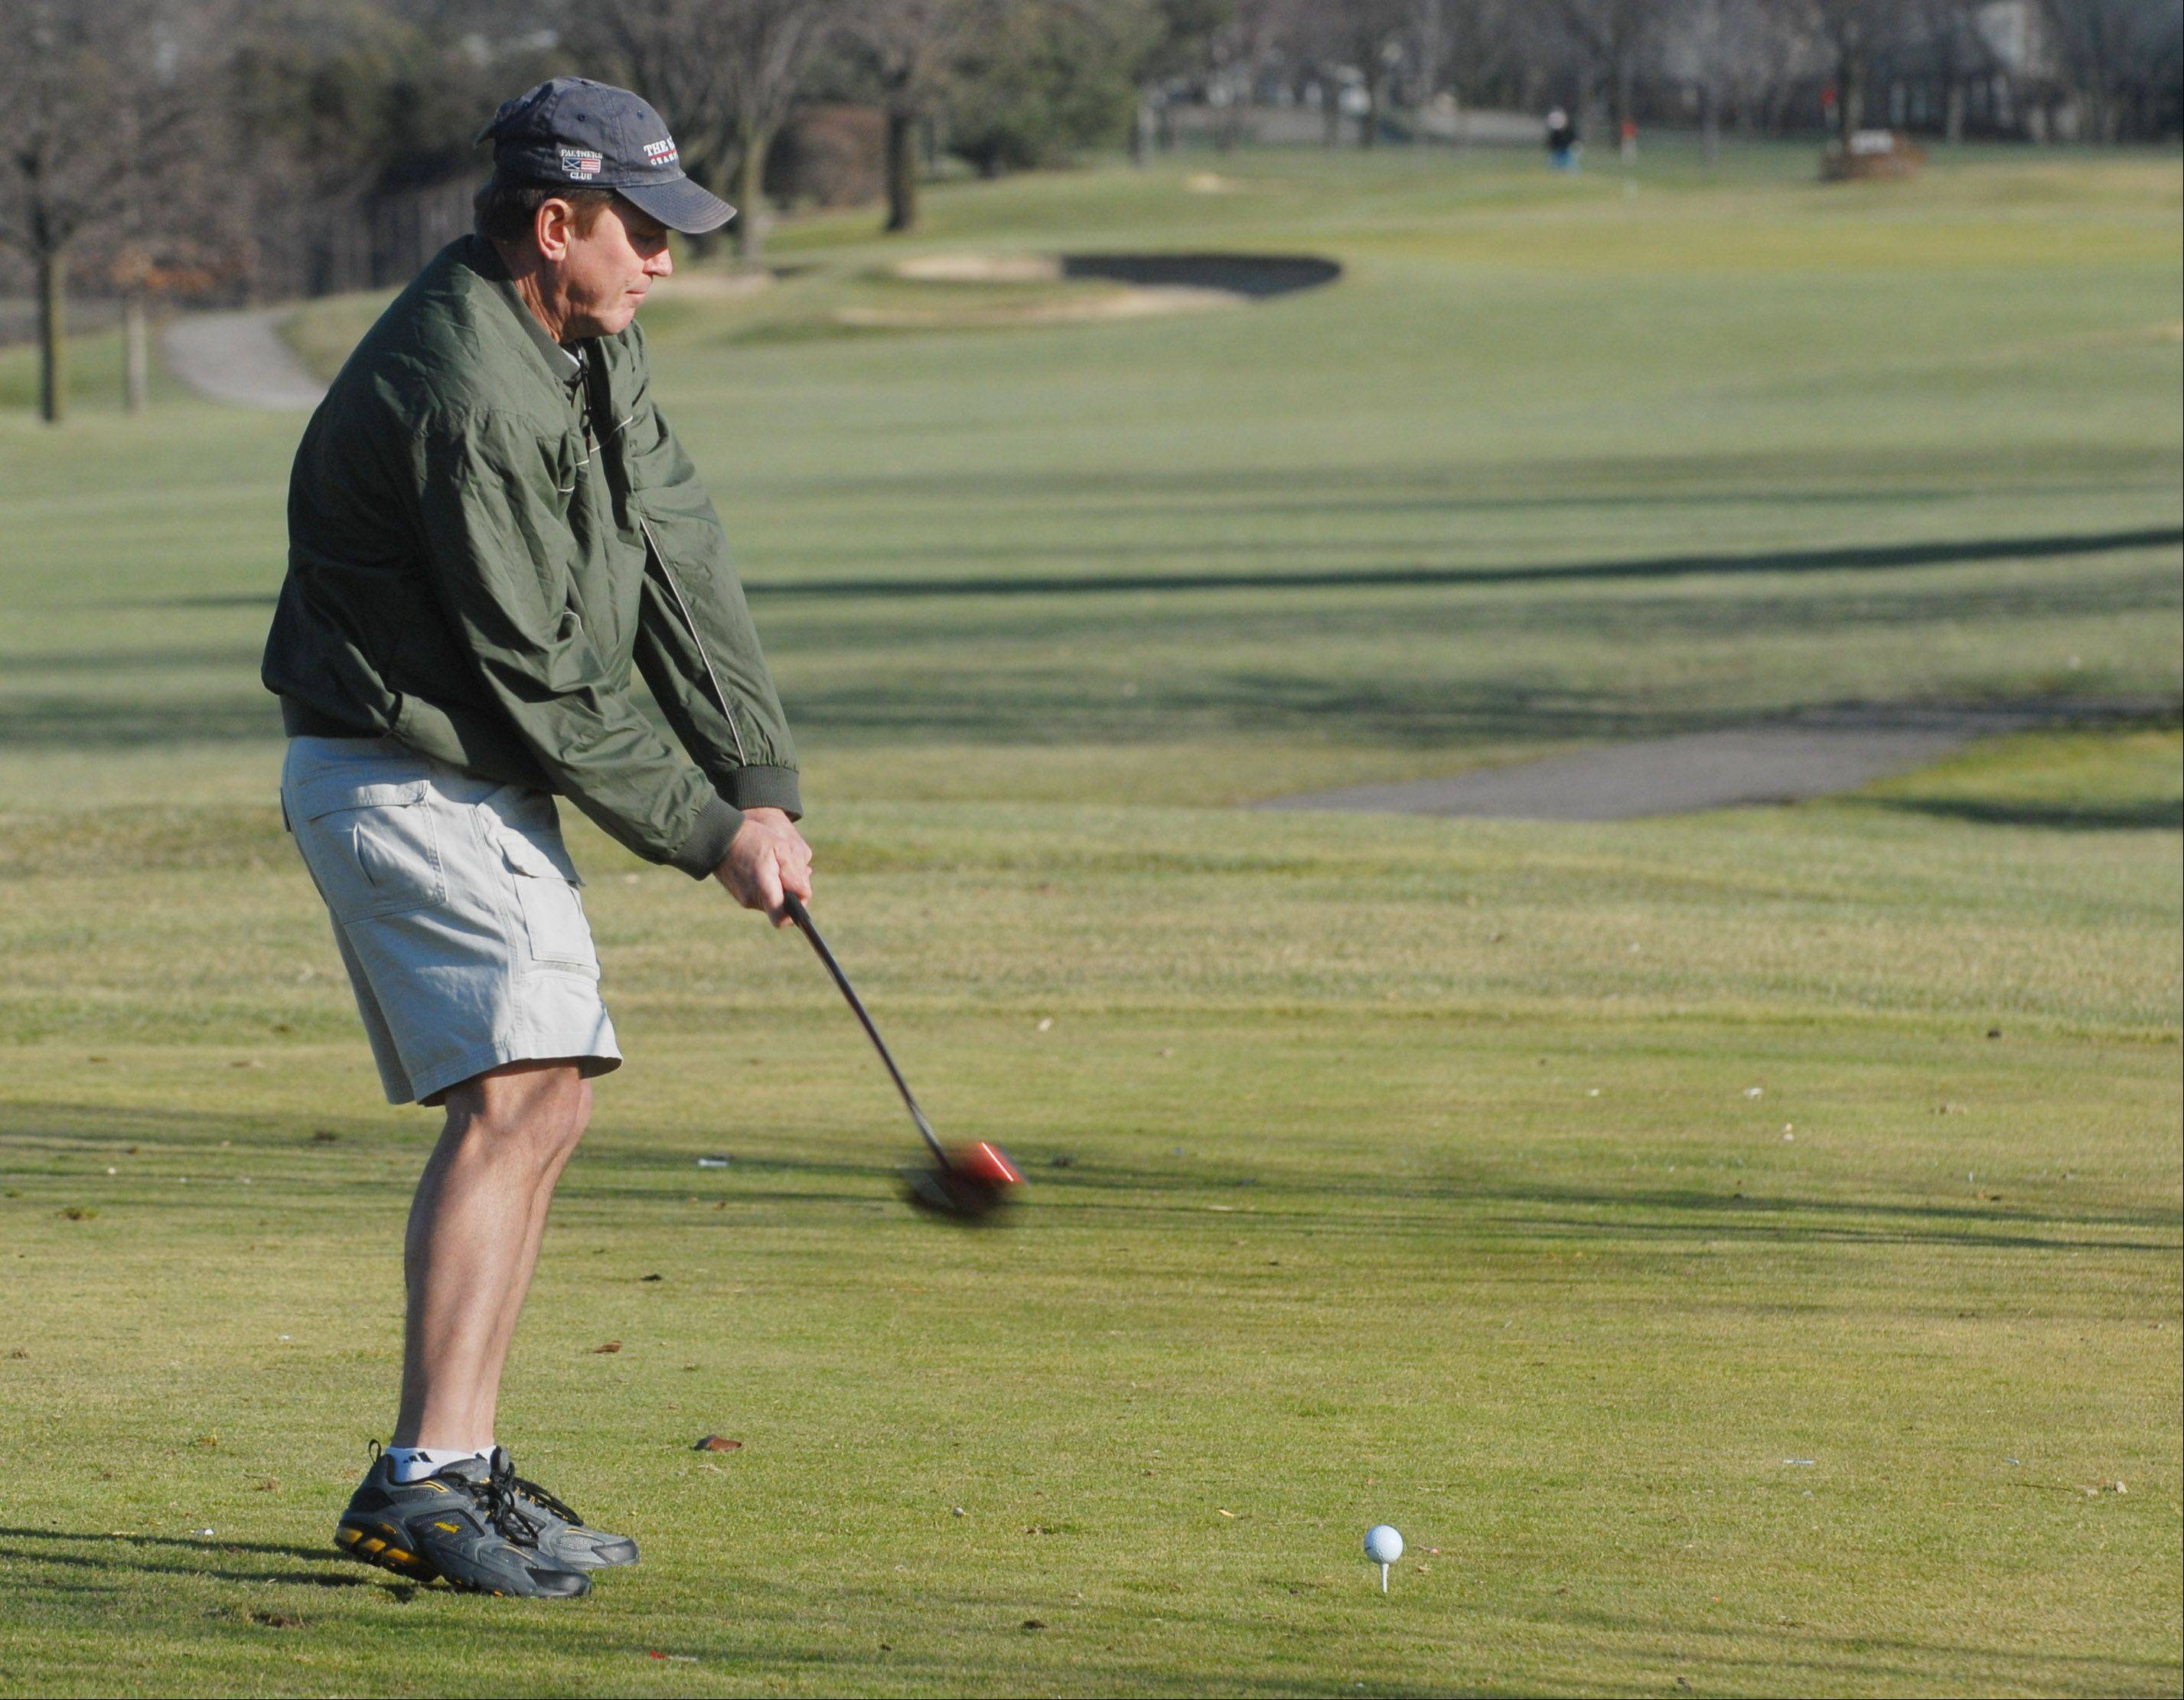 Kenny Geheb of Palatine tees off while playing in shorts at the Arlington Lakes Golf Club in Arlington Heights Thursday.